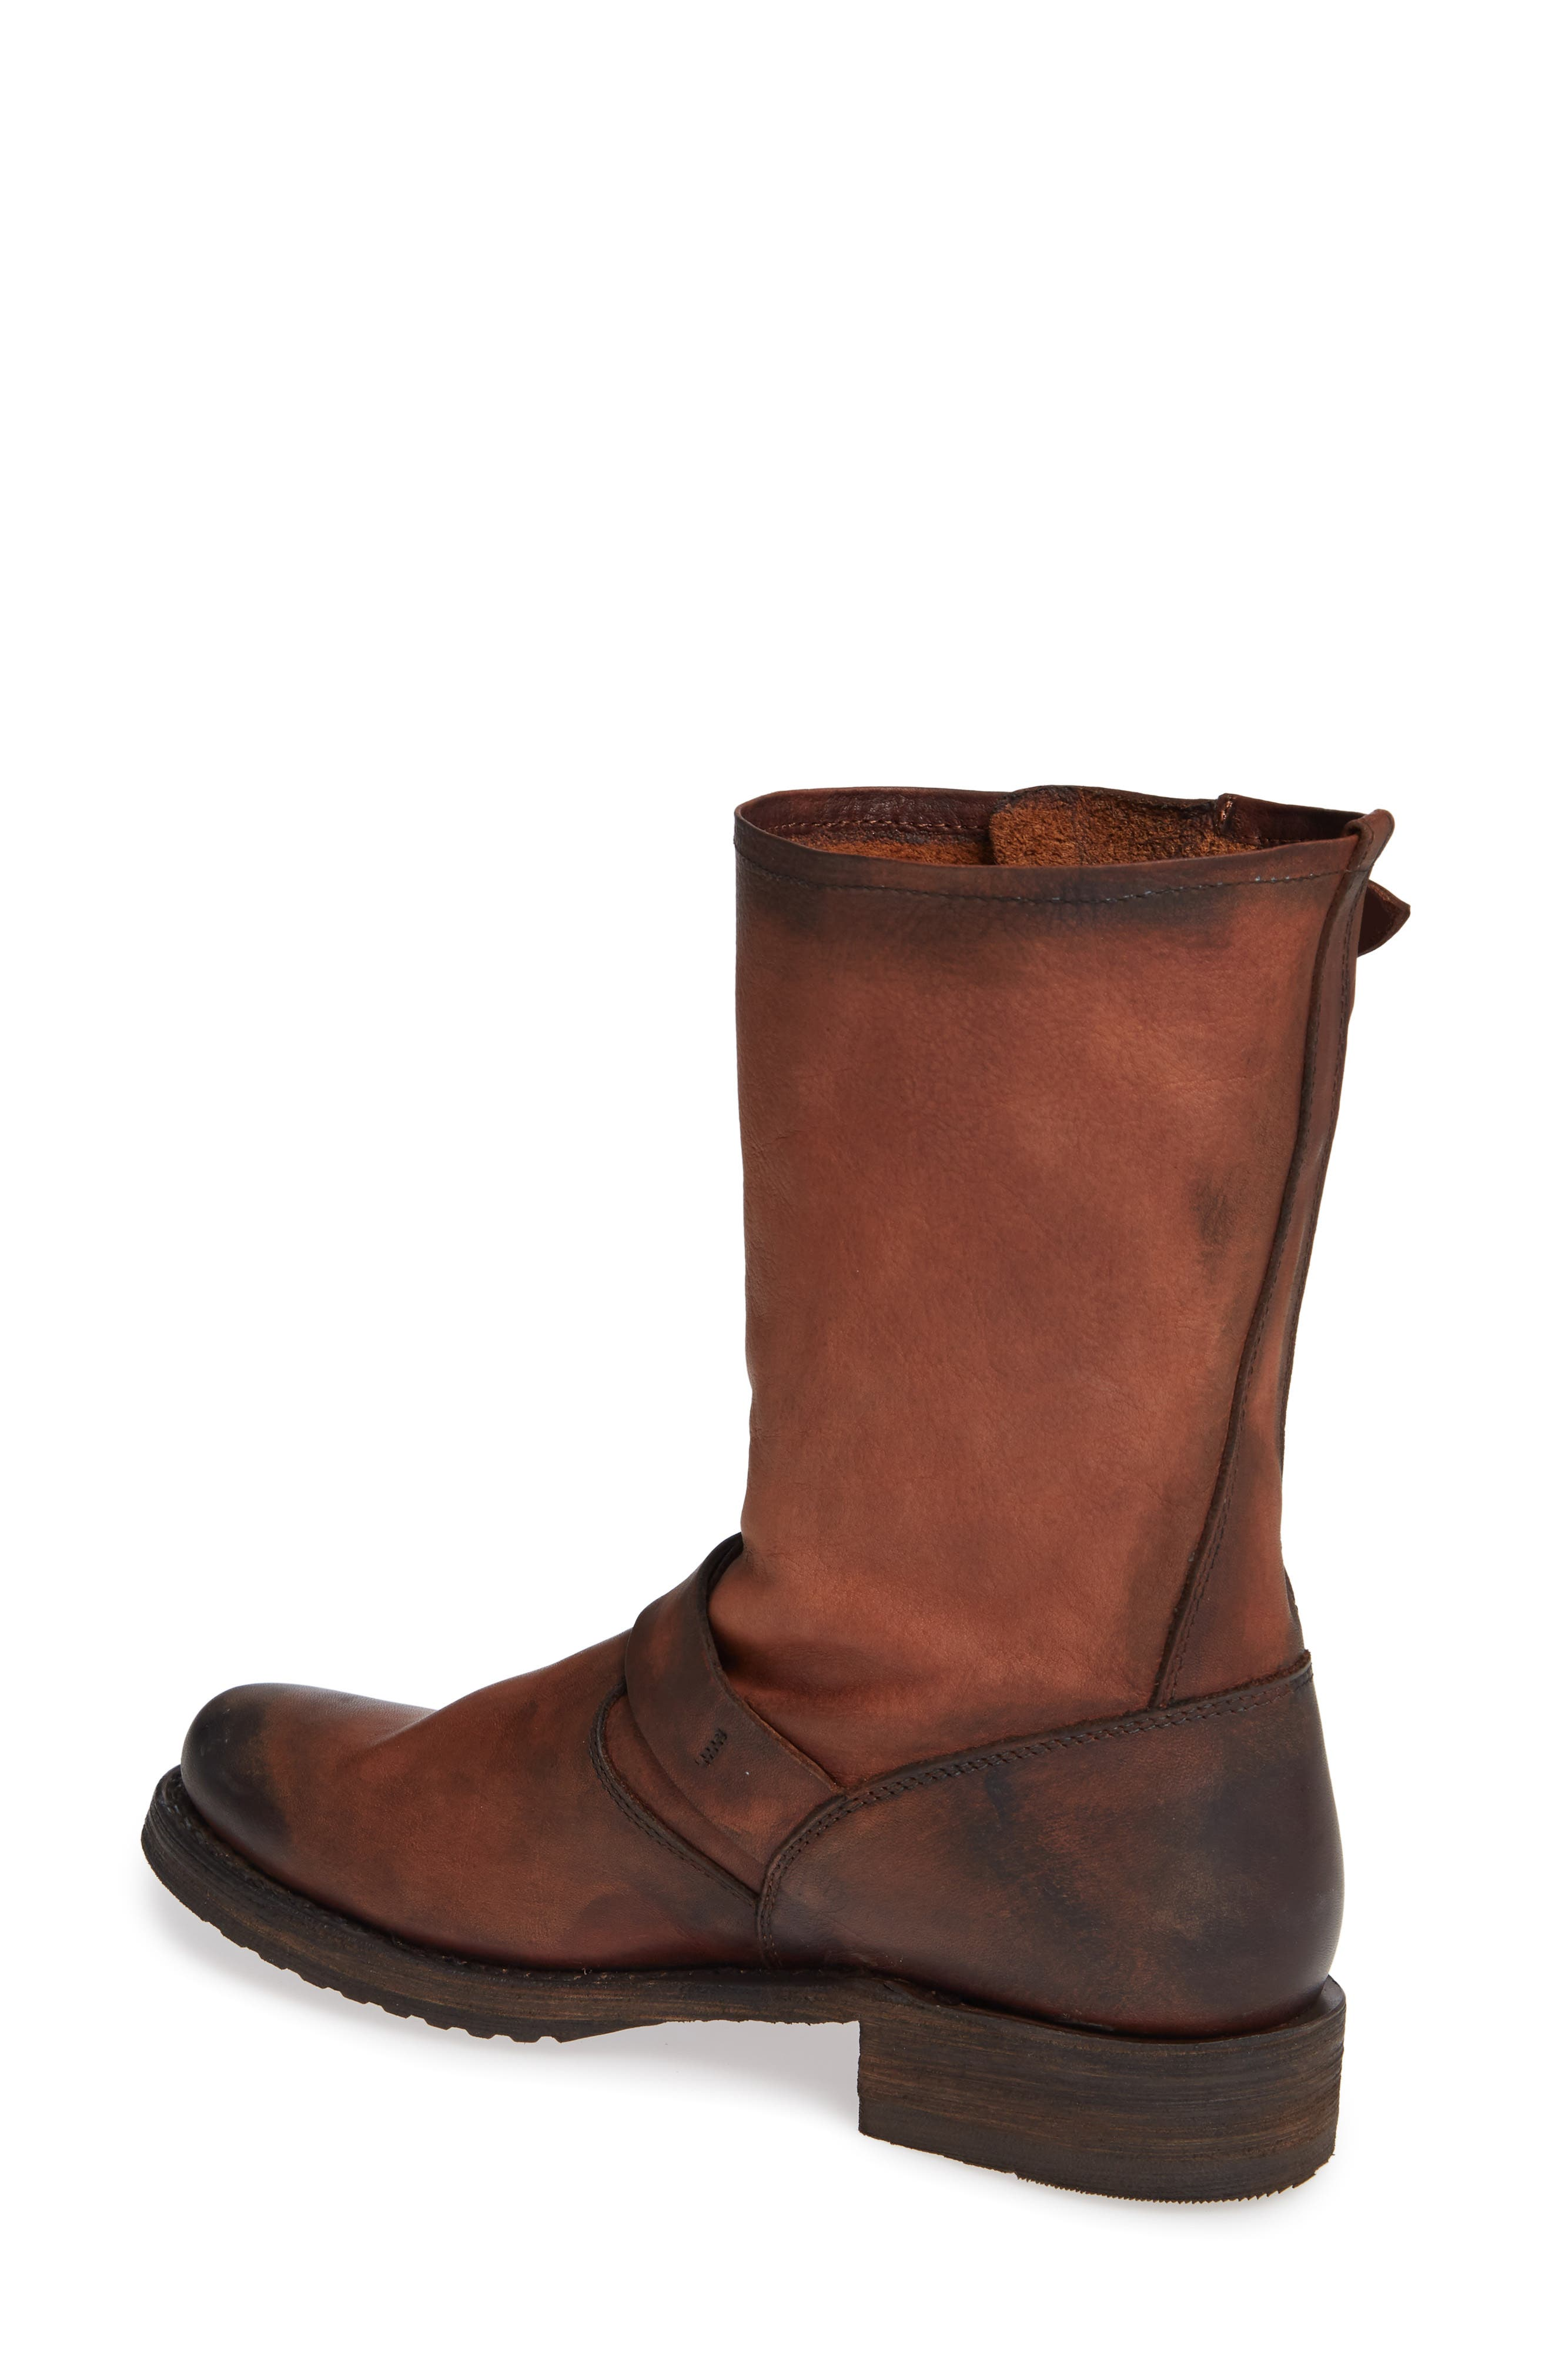 'Veronica' Short Boot,                             Alternate thumbnail 2, color,                             REDWOOD LEATHER